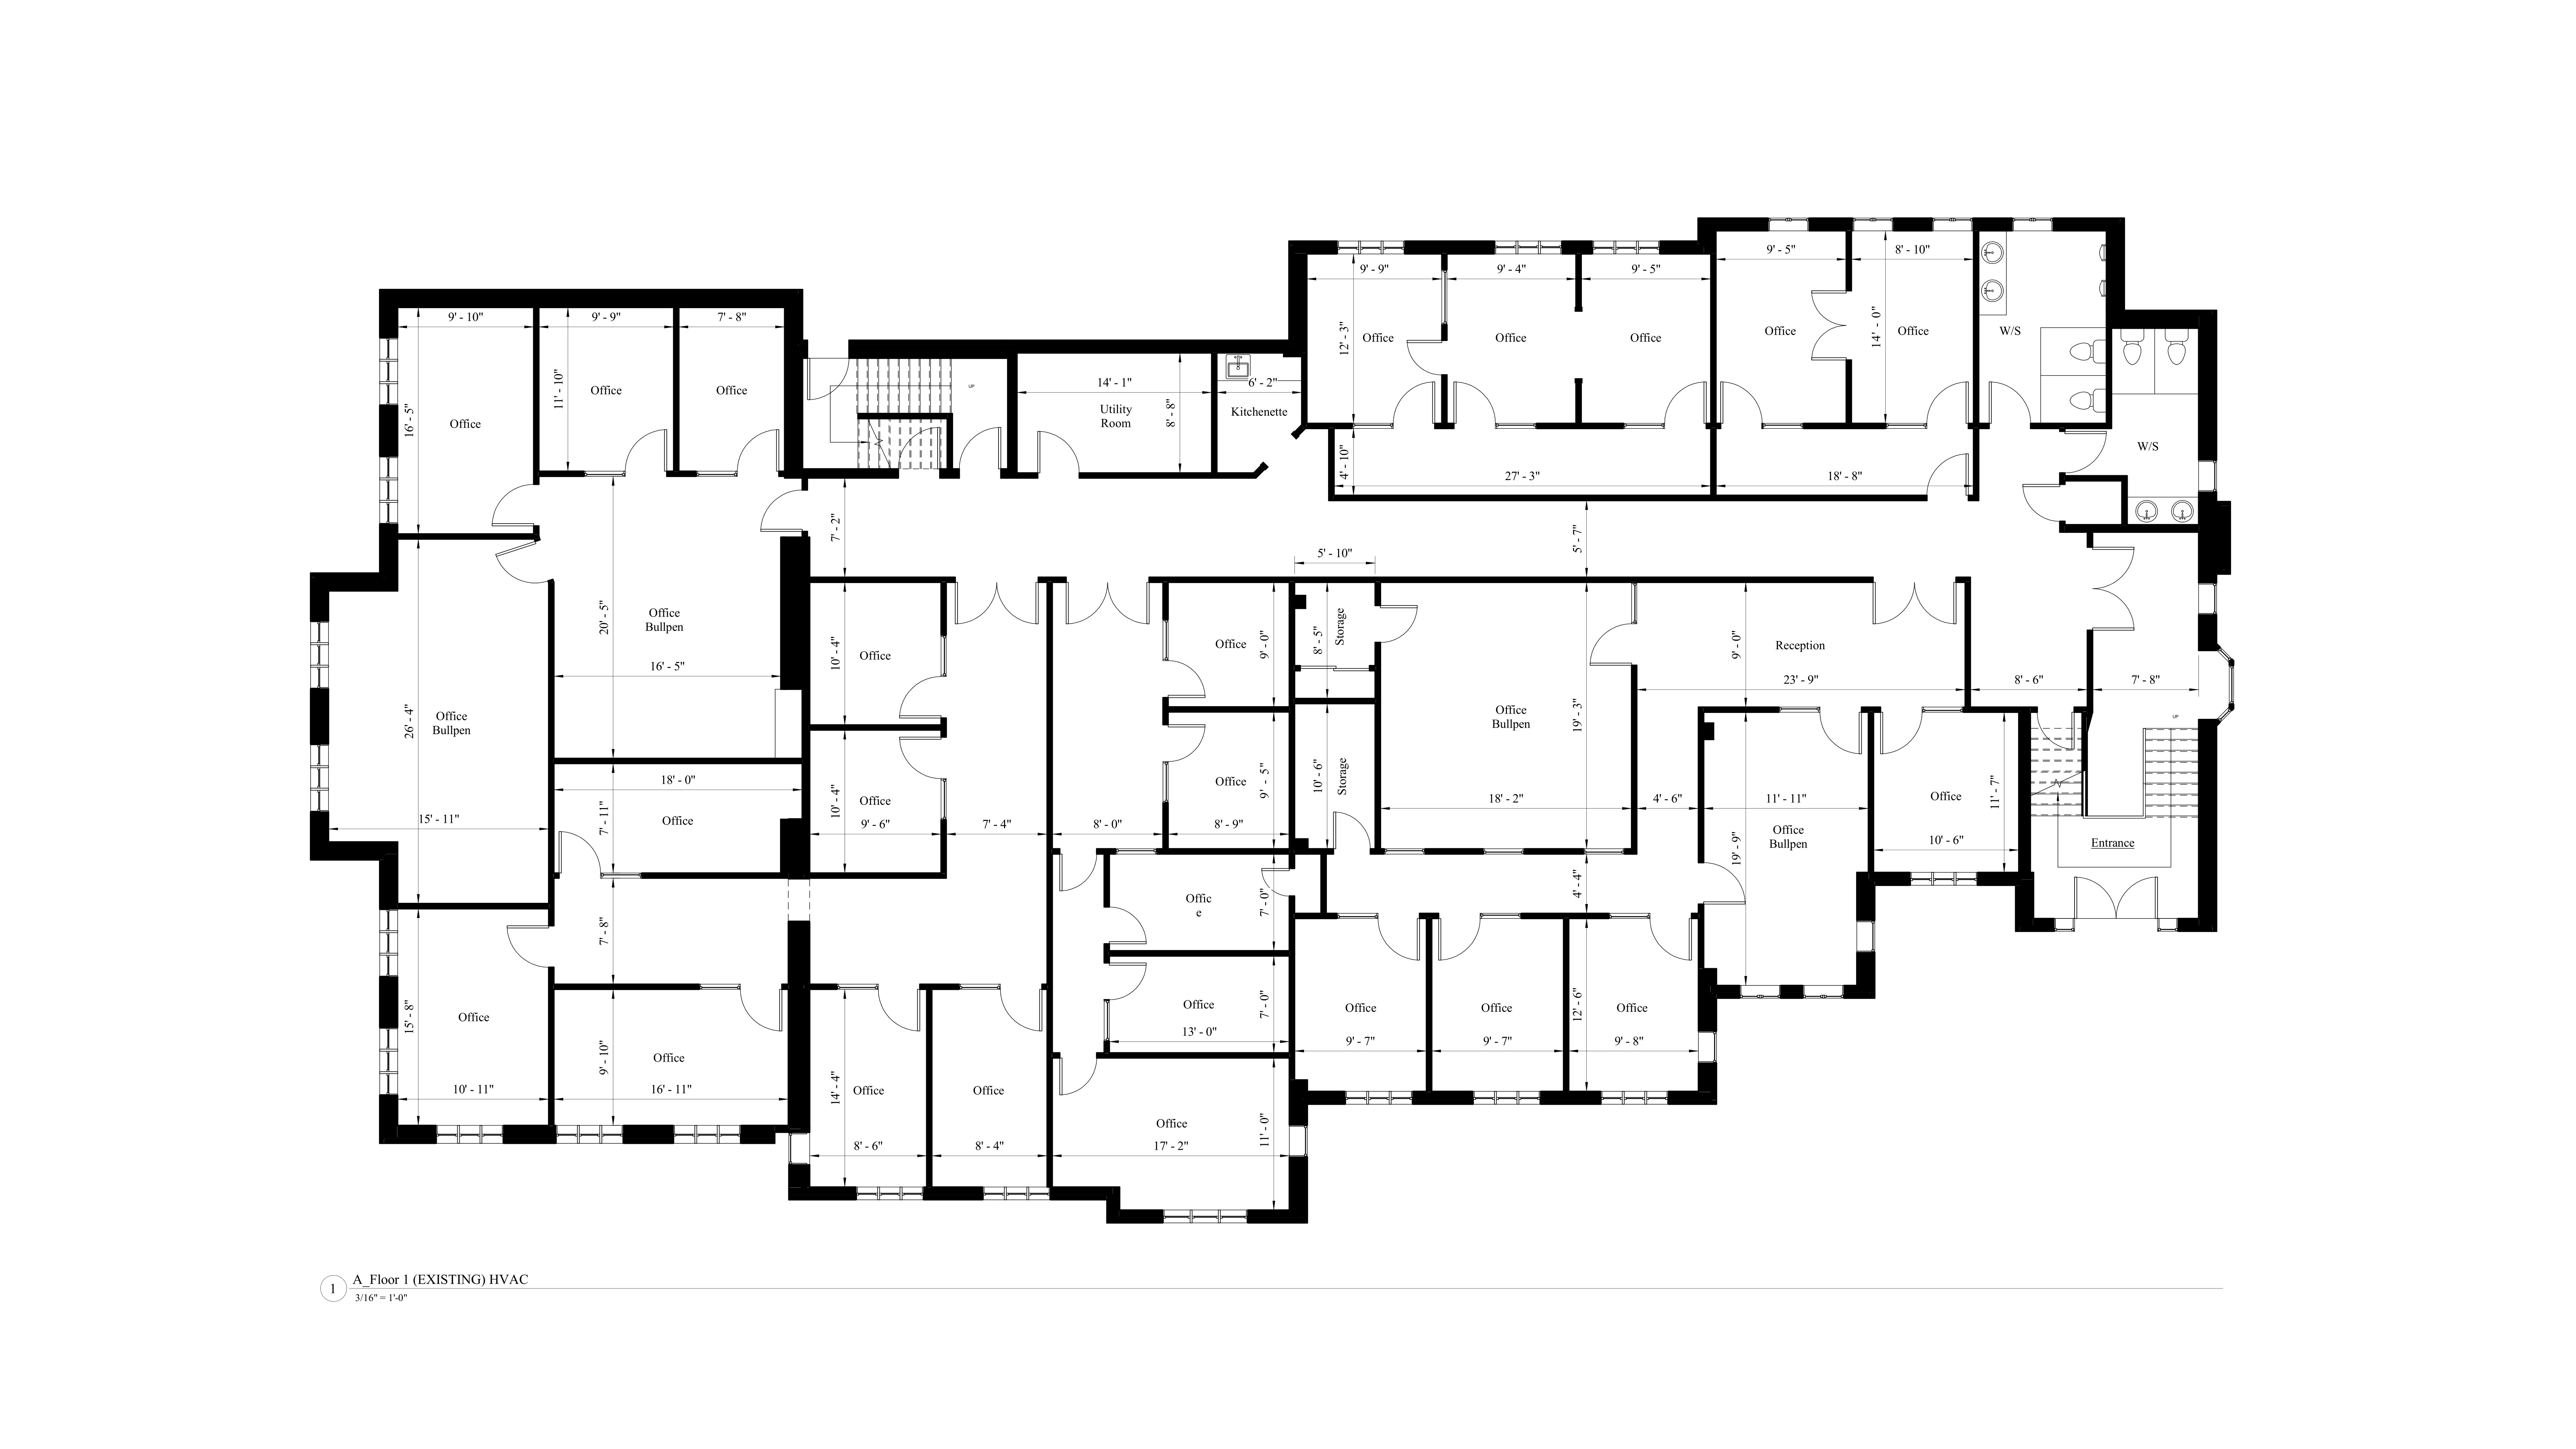 AutoCad drawing of the existing floor plan model for the first level of the commercial building.